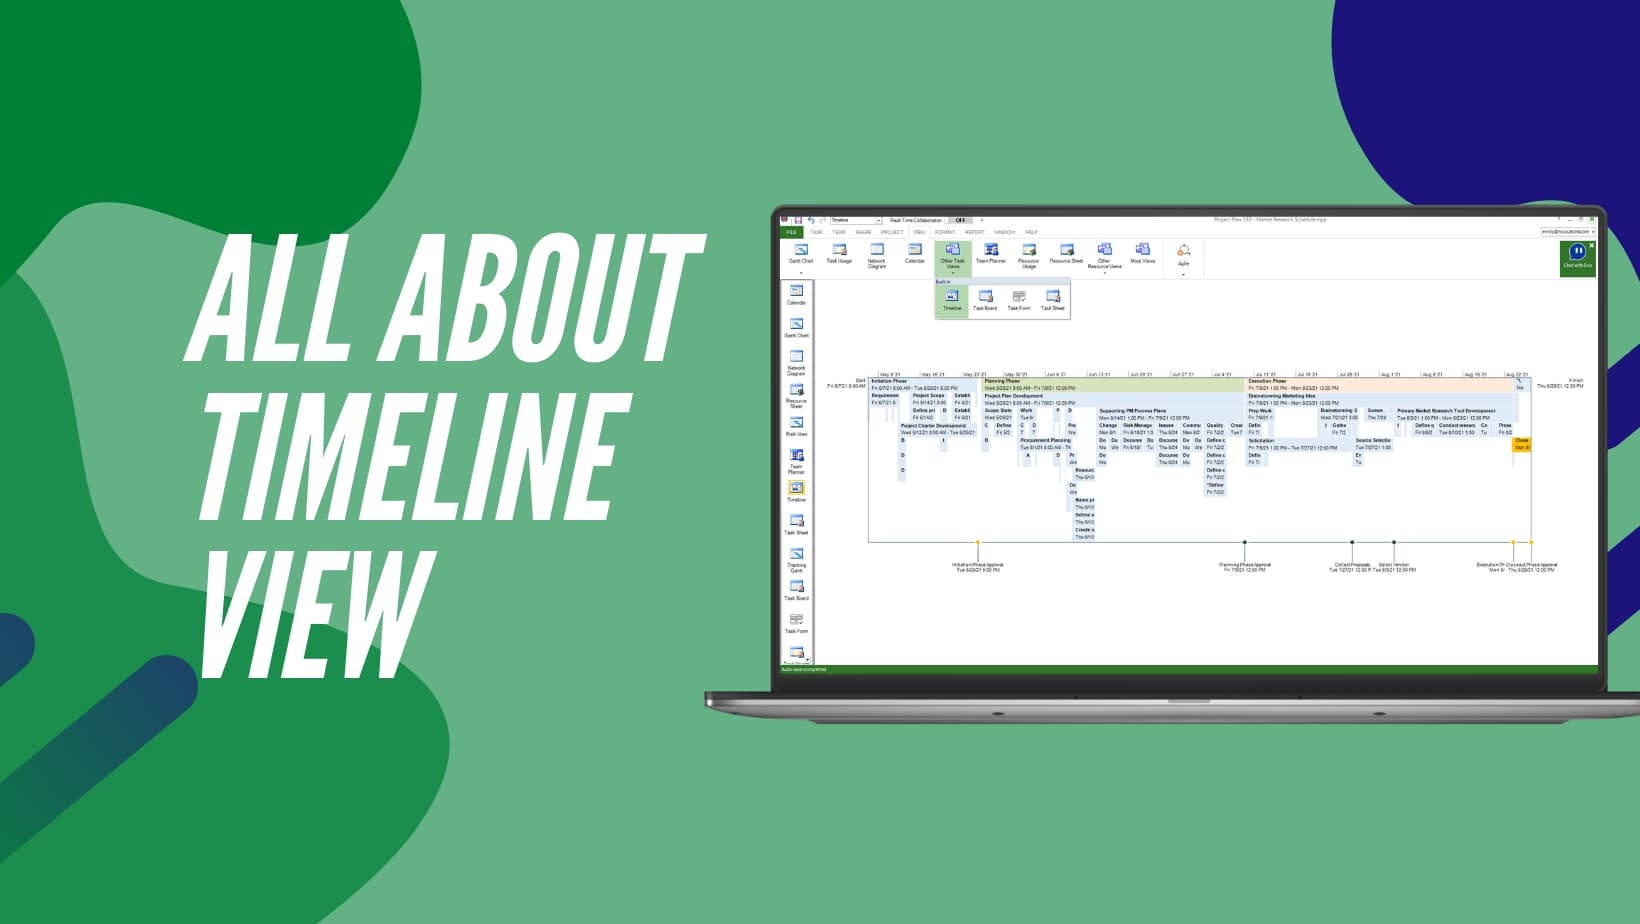 All About Timeline View